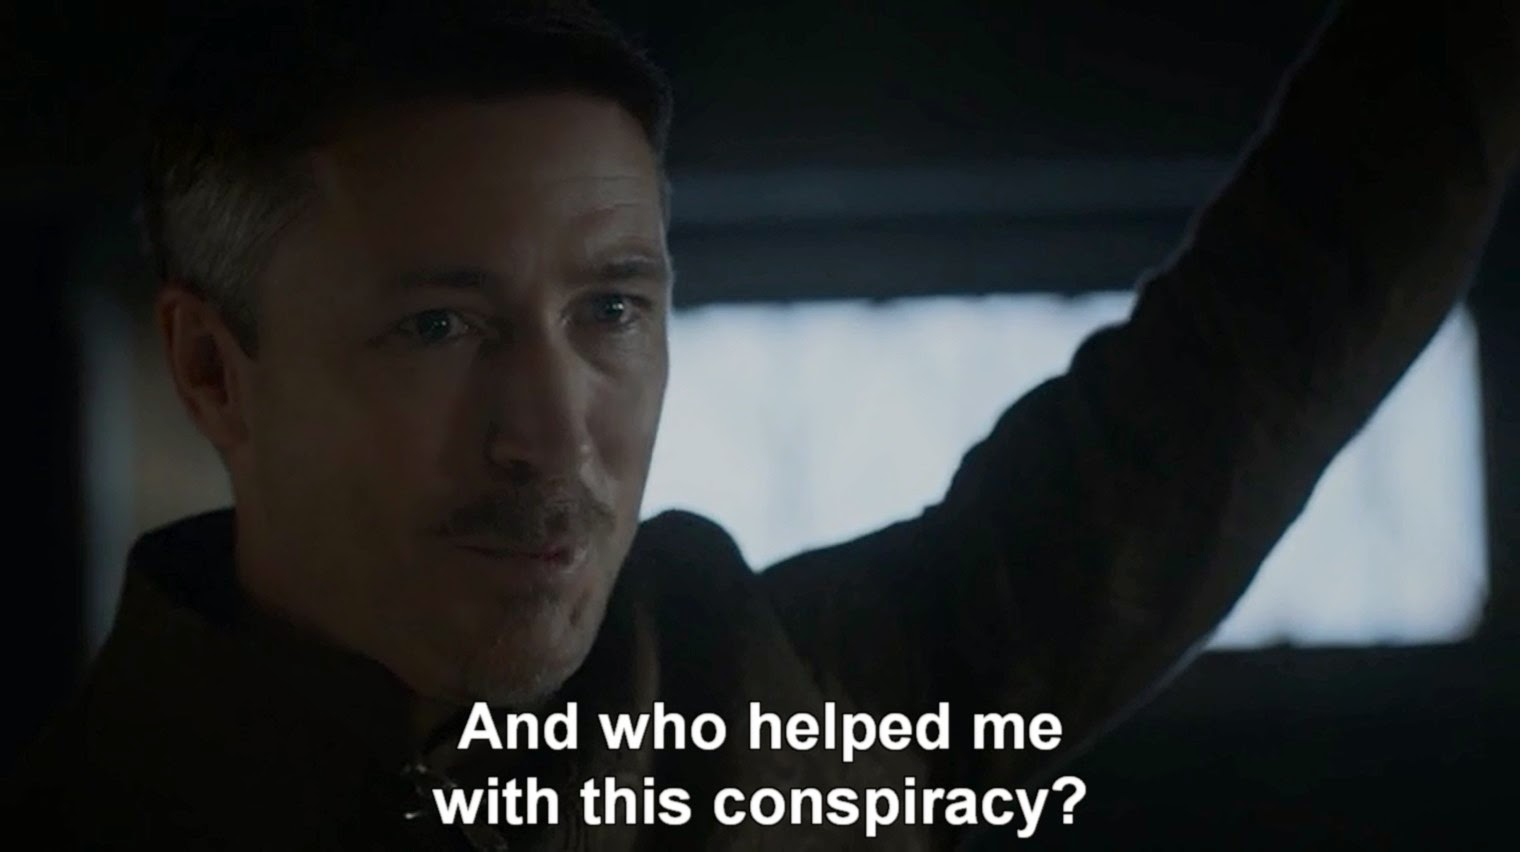 HBO Game of Thrones s04e04: Petyr Baelish and his conspiracy